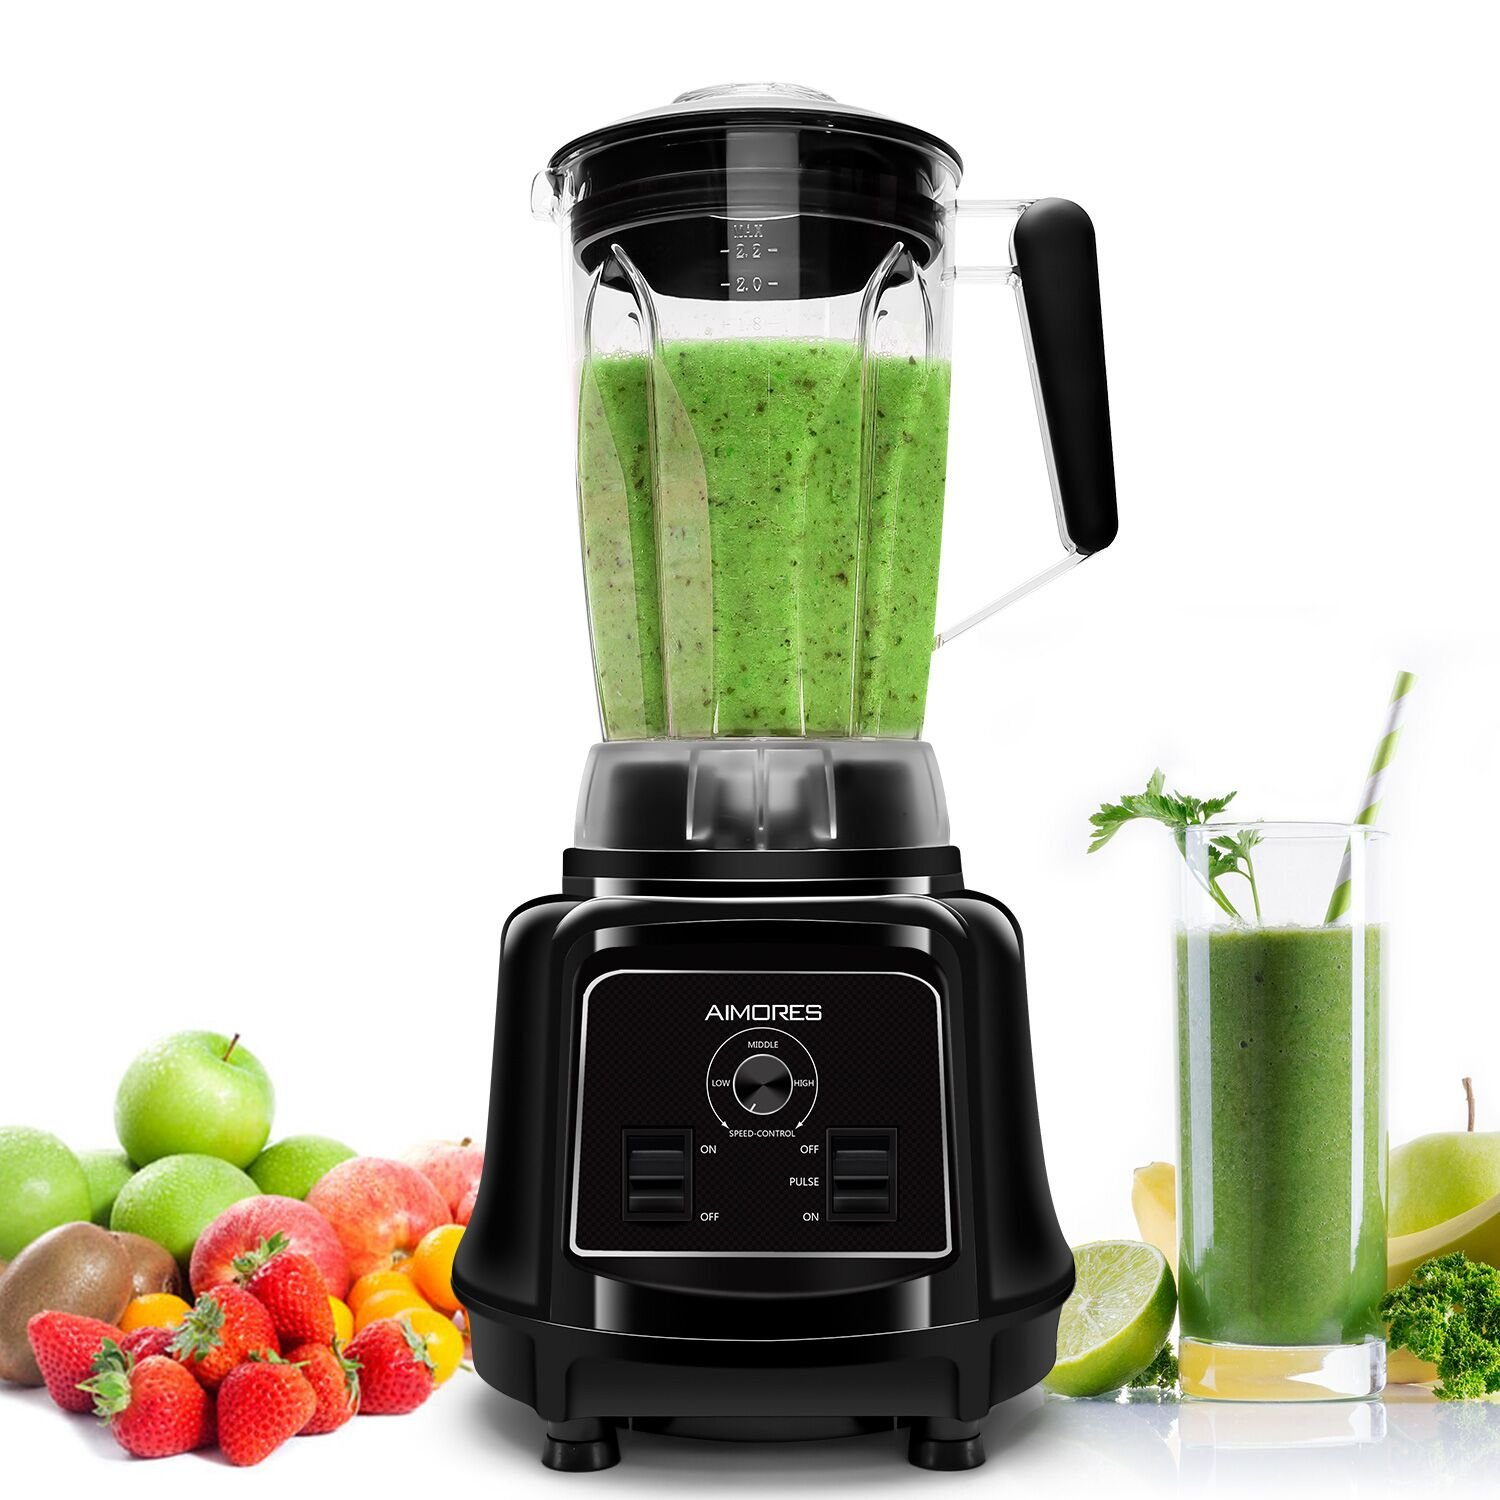 Commercial Blender AIMORES | High Speed 28,000 RPMs 75oz Smoothie Mixer Juicer | Sturdy Food Processor for Ice, Soup, Mincemeat, Pastry, Optimized 6 Sharp Blades, ETL/FDA Approved (Black) by Aimores